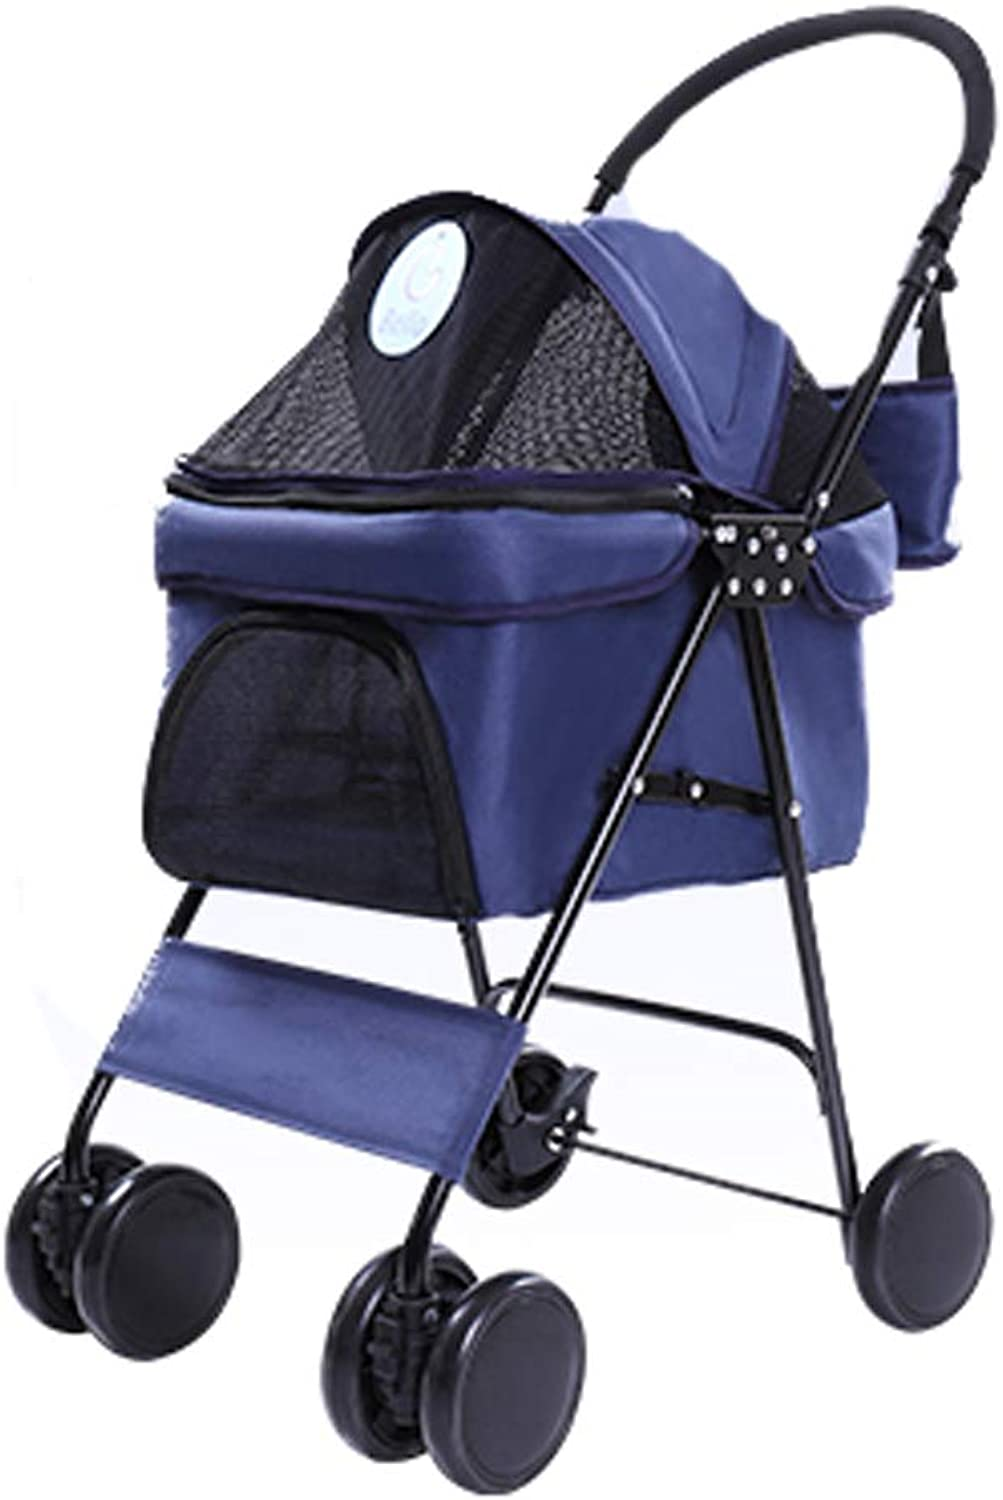 Lihuaa Pet Stroller Disabled Pet Car Ageing Pet Car Light Folding Pet Stroller Dog Cat Teddy Small Delicate Fourwheeled Car Travel Supplies (color   bluee)